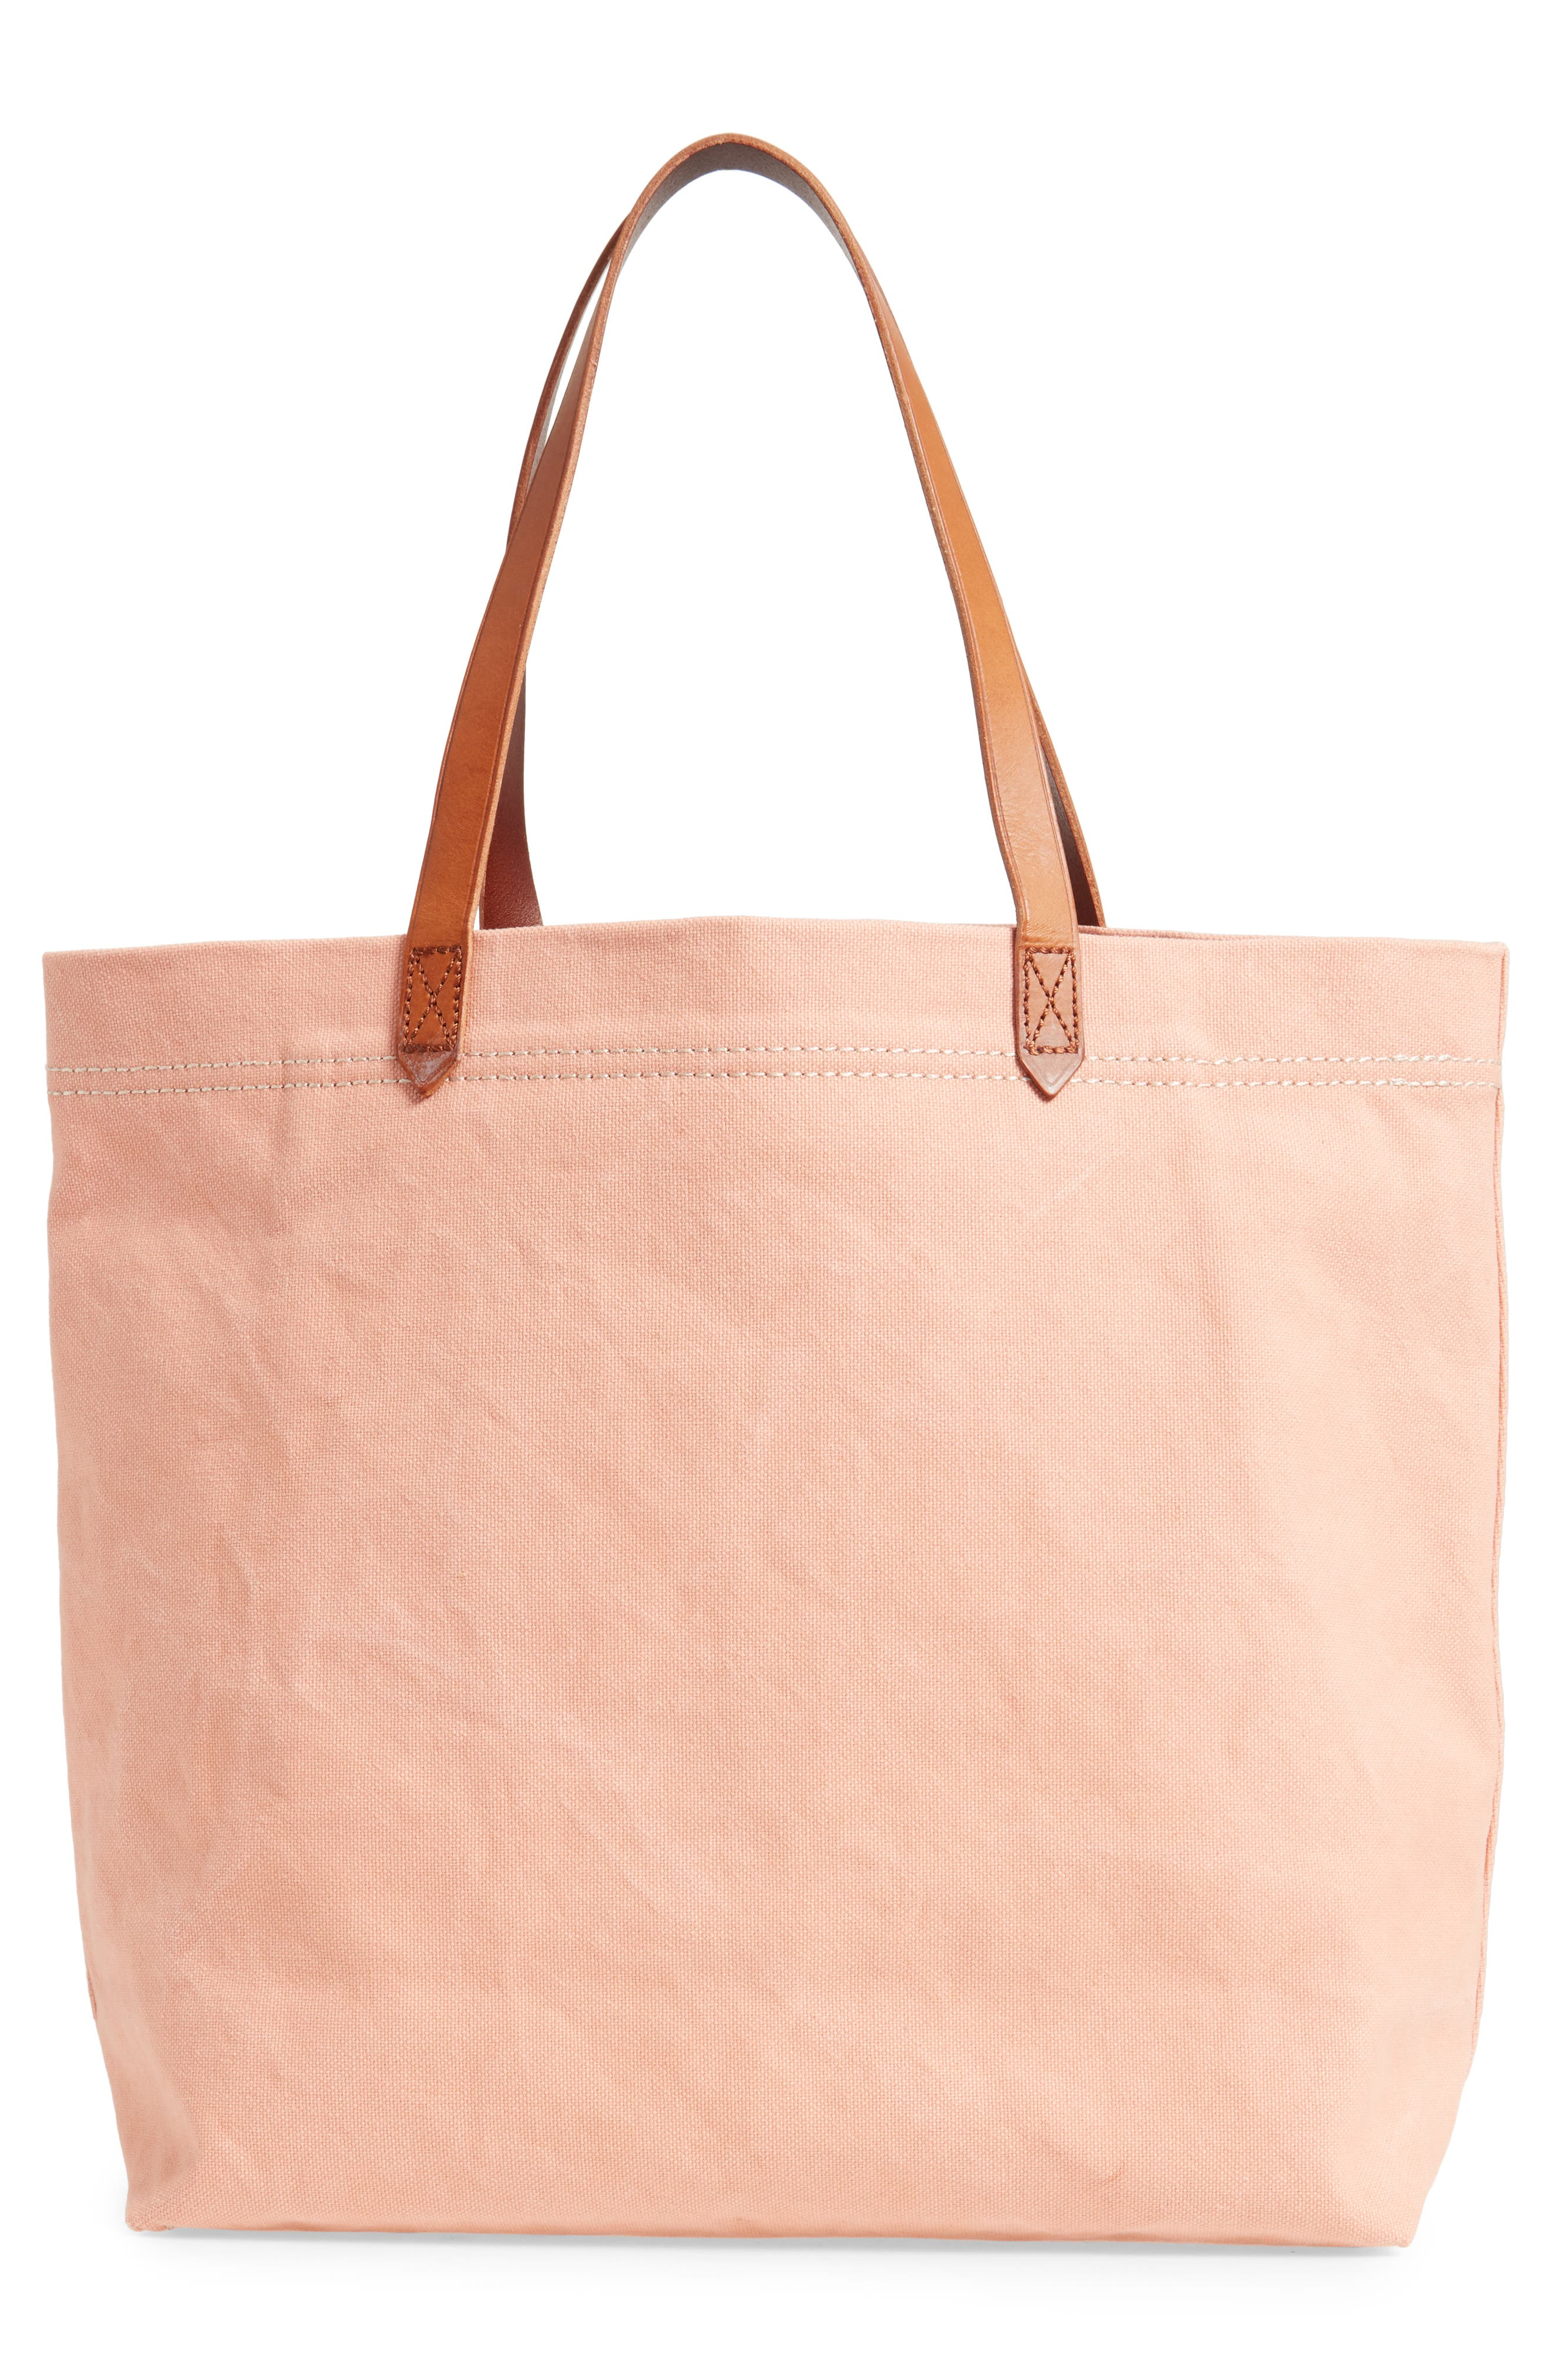 MADEWELL, Canvas Transport Tote, Alternate thumbnail 3, color, ANTIQUE CORAL